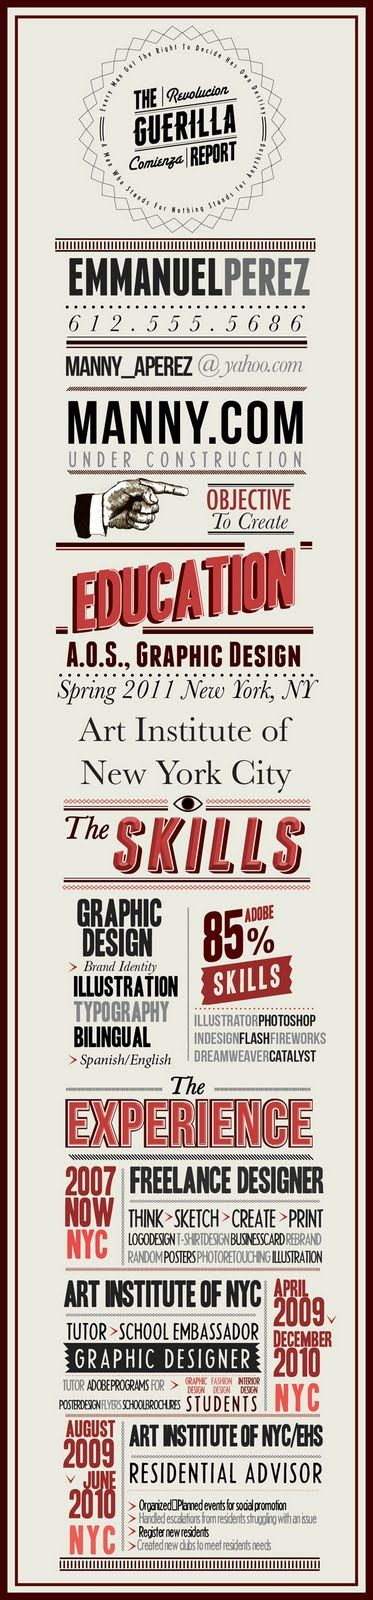 I design Infographic Resumes - check out my portfolio by clicking - infographic resumes